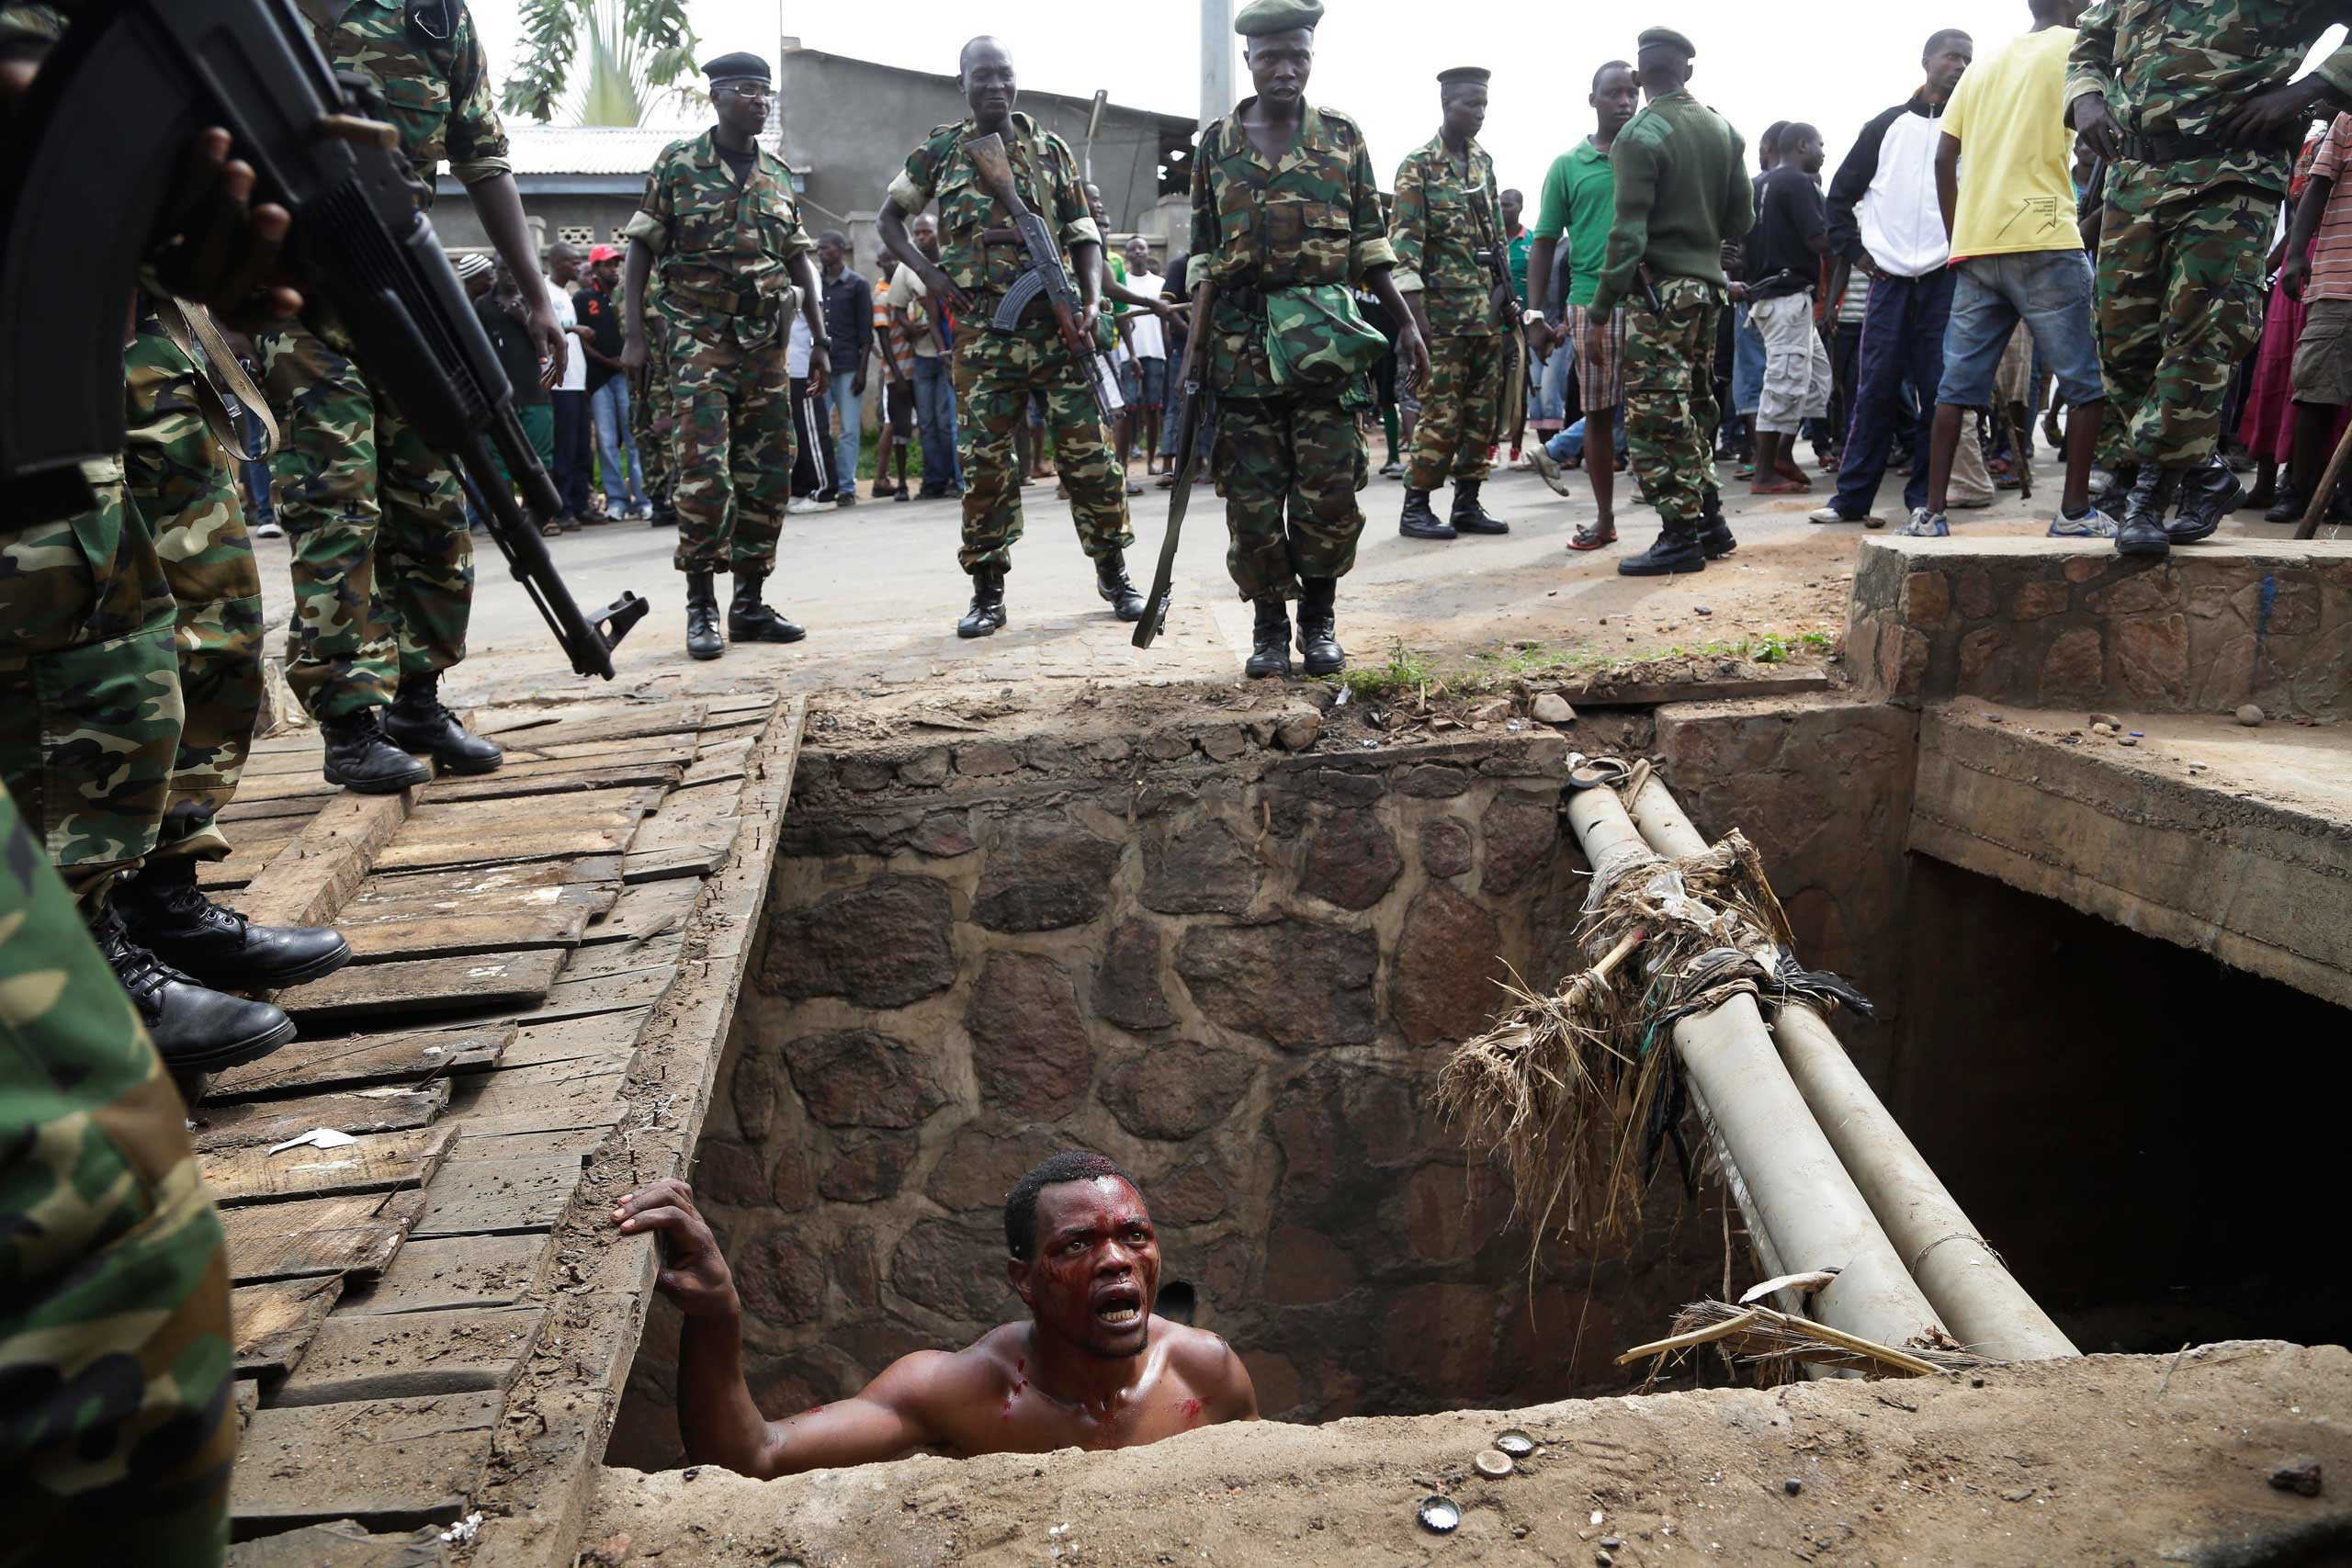 NBC News:  Mob Attacks Suspected Militia Member in BurundiJean Claude Niyonzima, a suspected member of the ruling party's Imbonerakure youth militia, pleads with soldiers to protect him from a mob of demonstrators after he emerged from hiding in a sewer in the Cibitoke district of Bujumbura, Burundi on May 7, 2015.